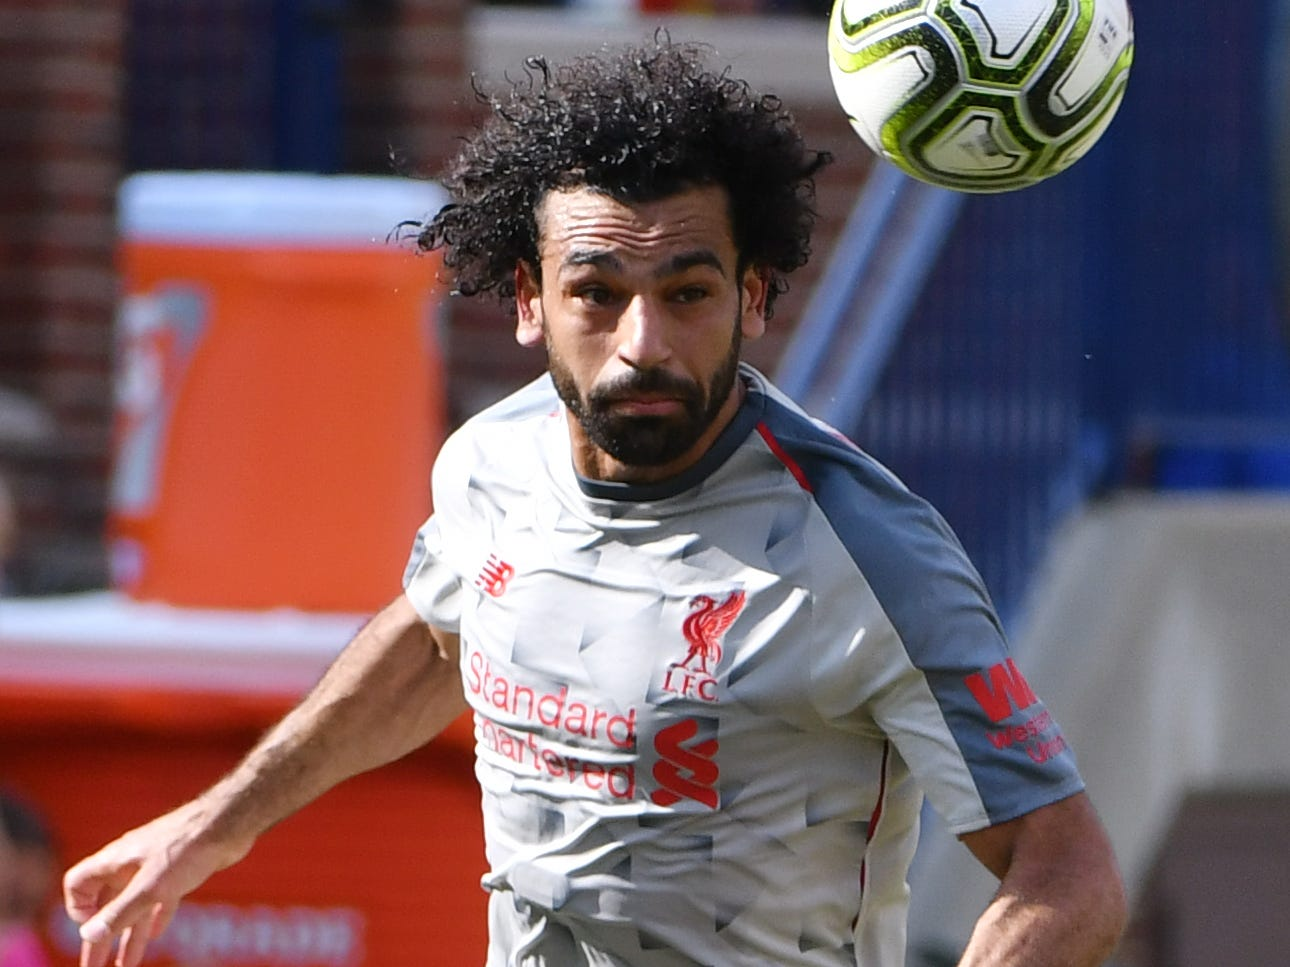 Liverpool's Mohamed Salah keeps an eye on the ball bringing it up field in the first half.